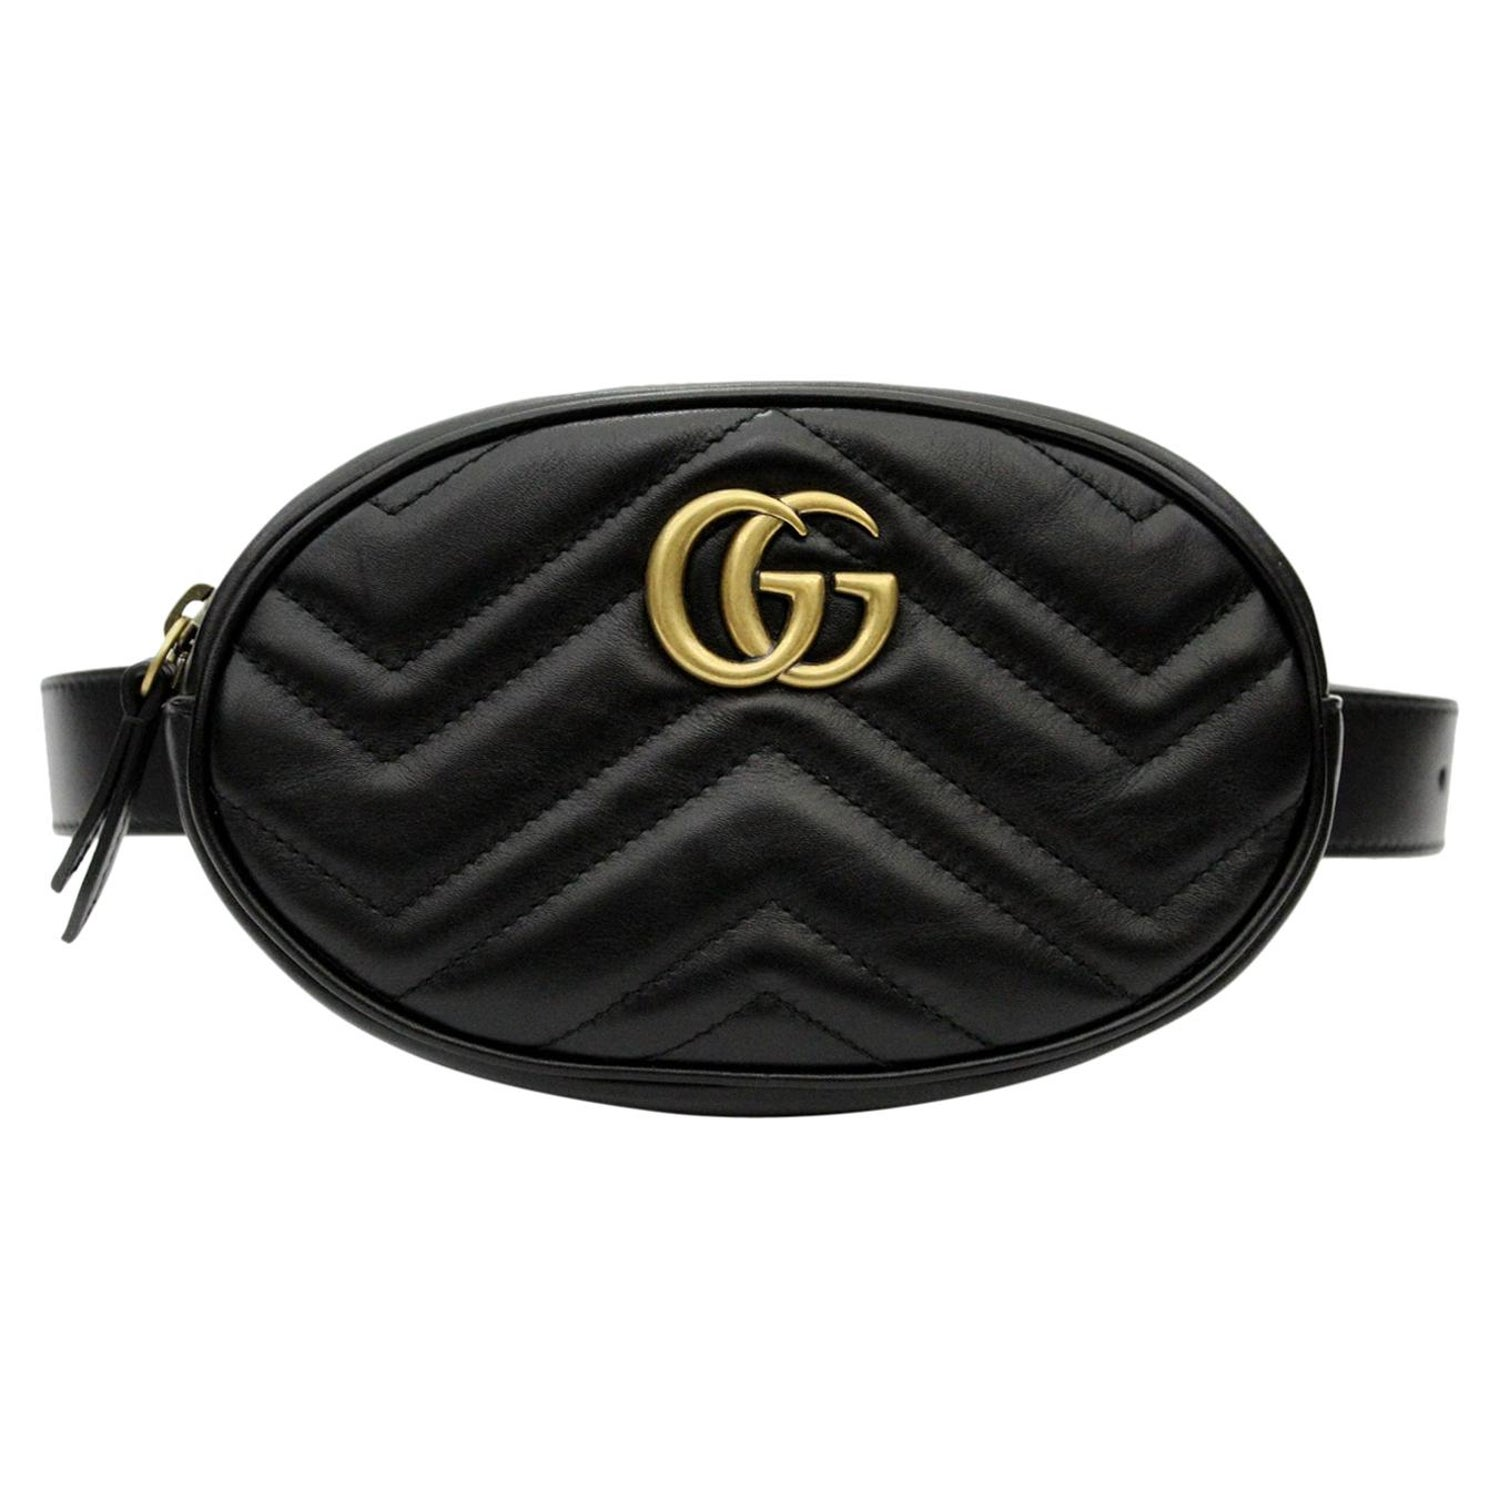 3ca0bbe7b2ca9a Gucci GG Marmont matelassé leather belt bag at 1stdibs